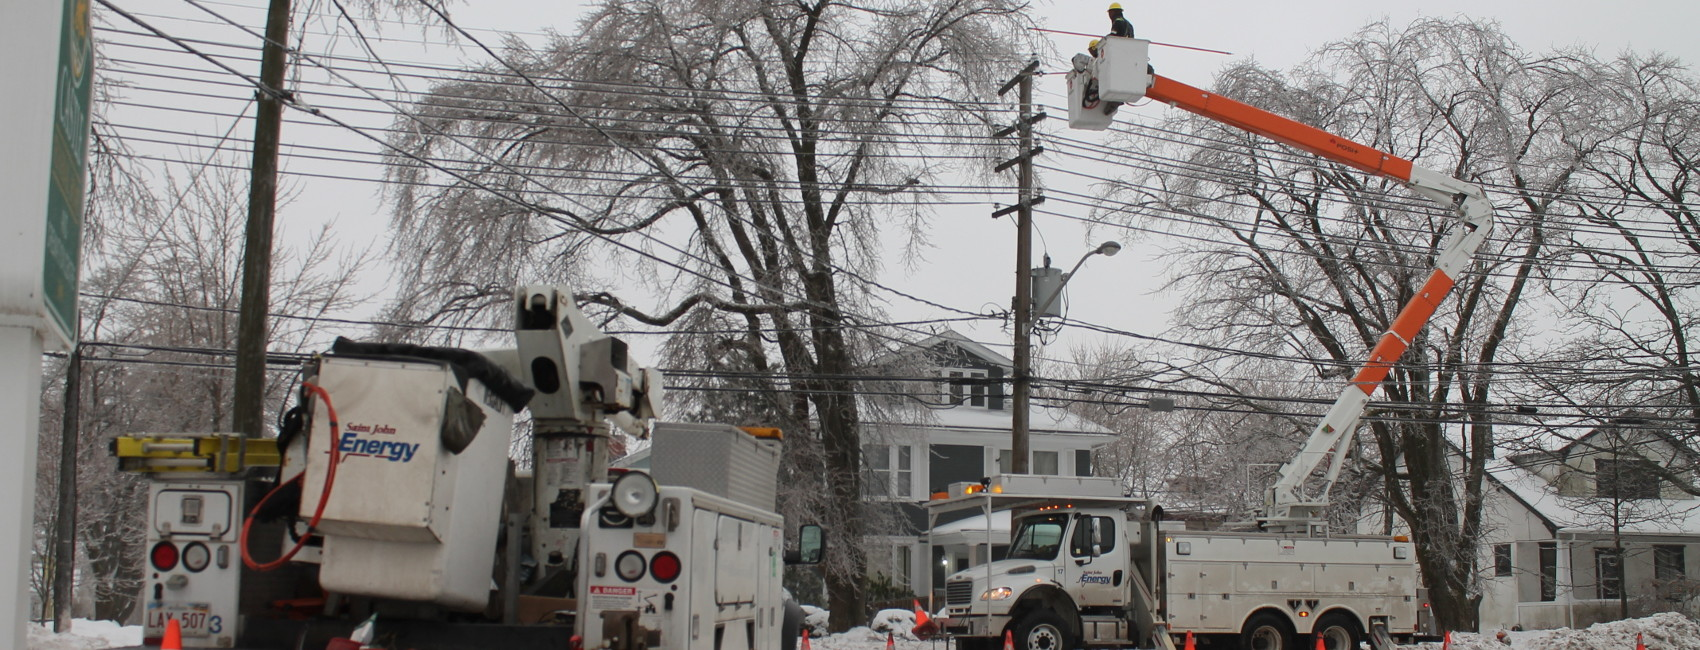 Power Outages Planned And Unplanned Saint John Energy